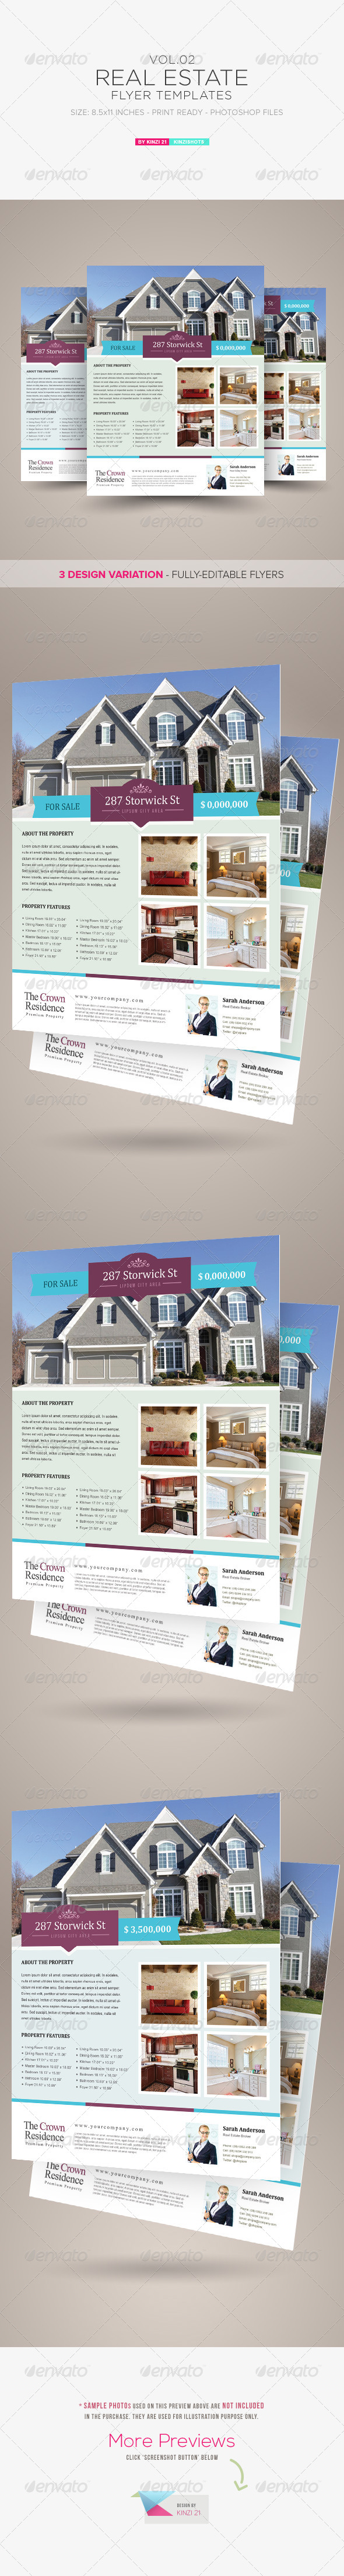 Real Estate Flyer Template Vol.02 - Corporate Flyers